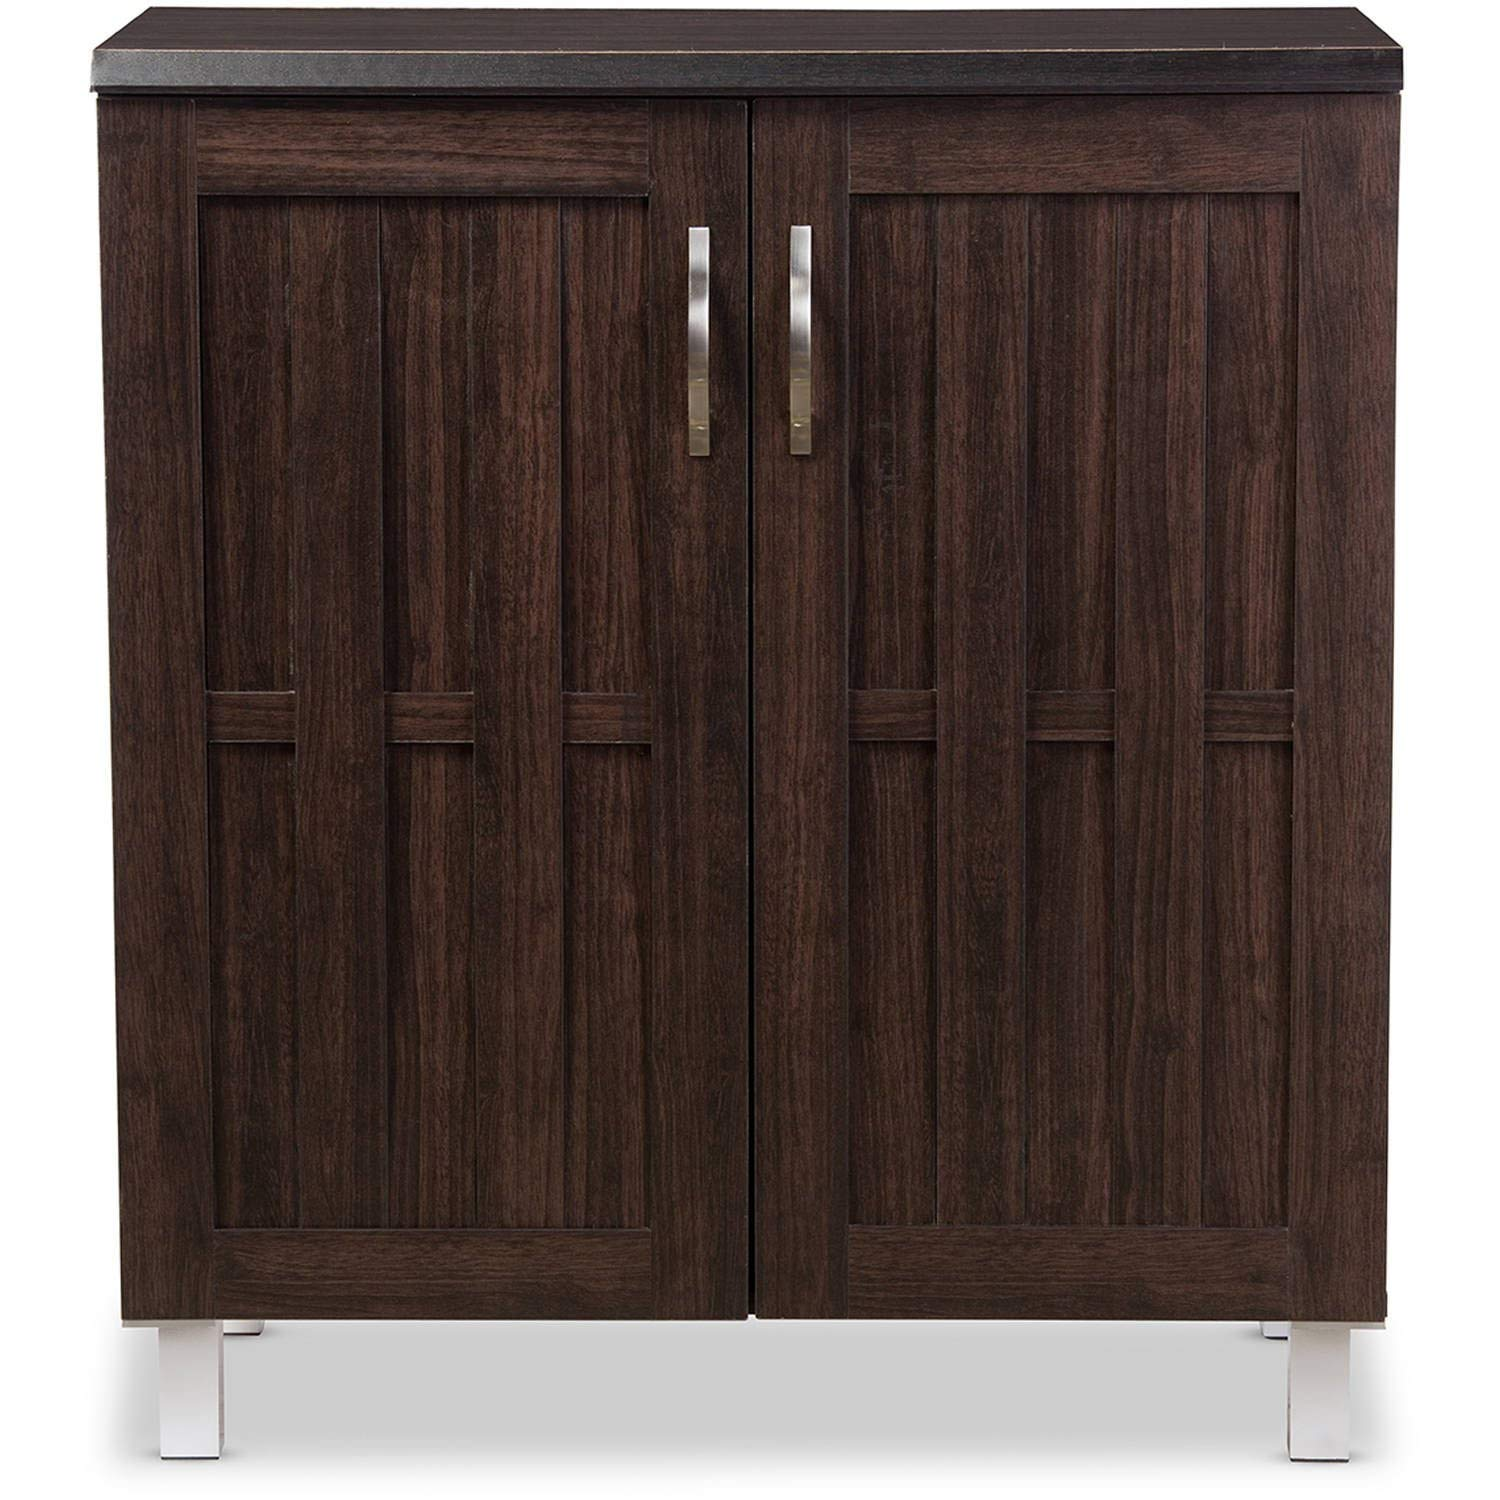 Storage Cabinet Buffet, Durable Construction, Extra Space, Space Saving Design, Functional, Buffet, Suitable for Dining Room, Kitchen, Entryway, Home Furniture, Espresso + Expert Guide